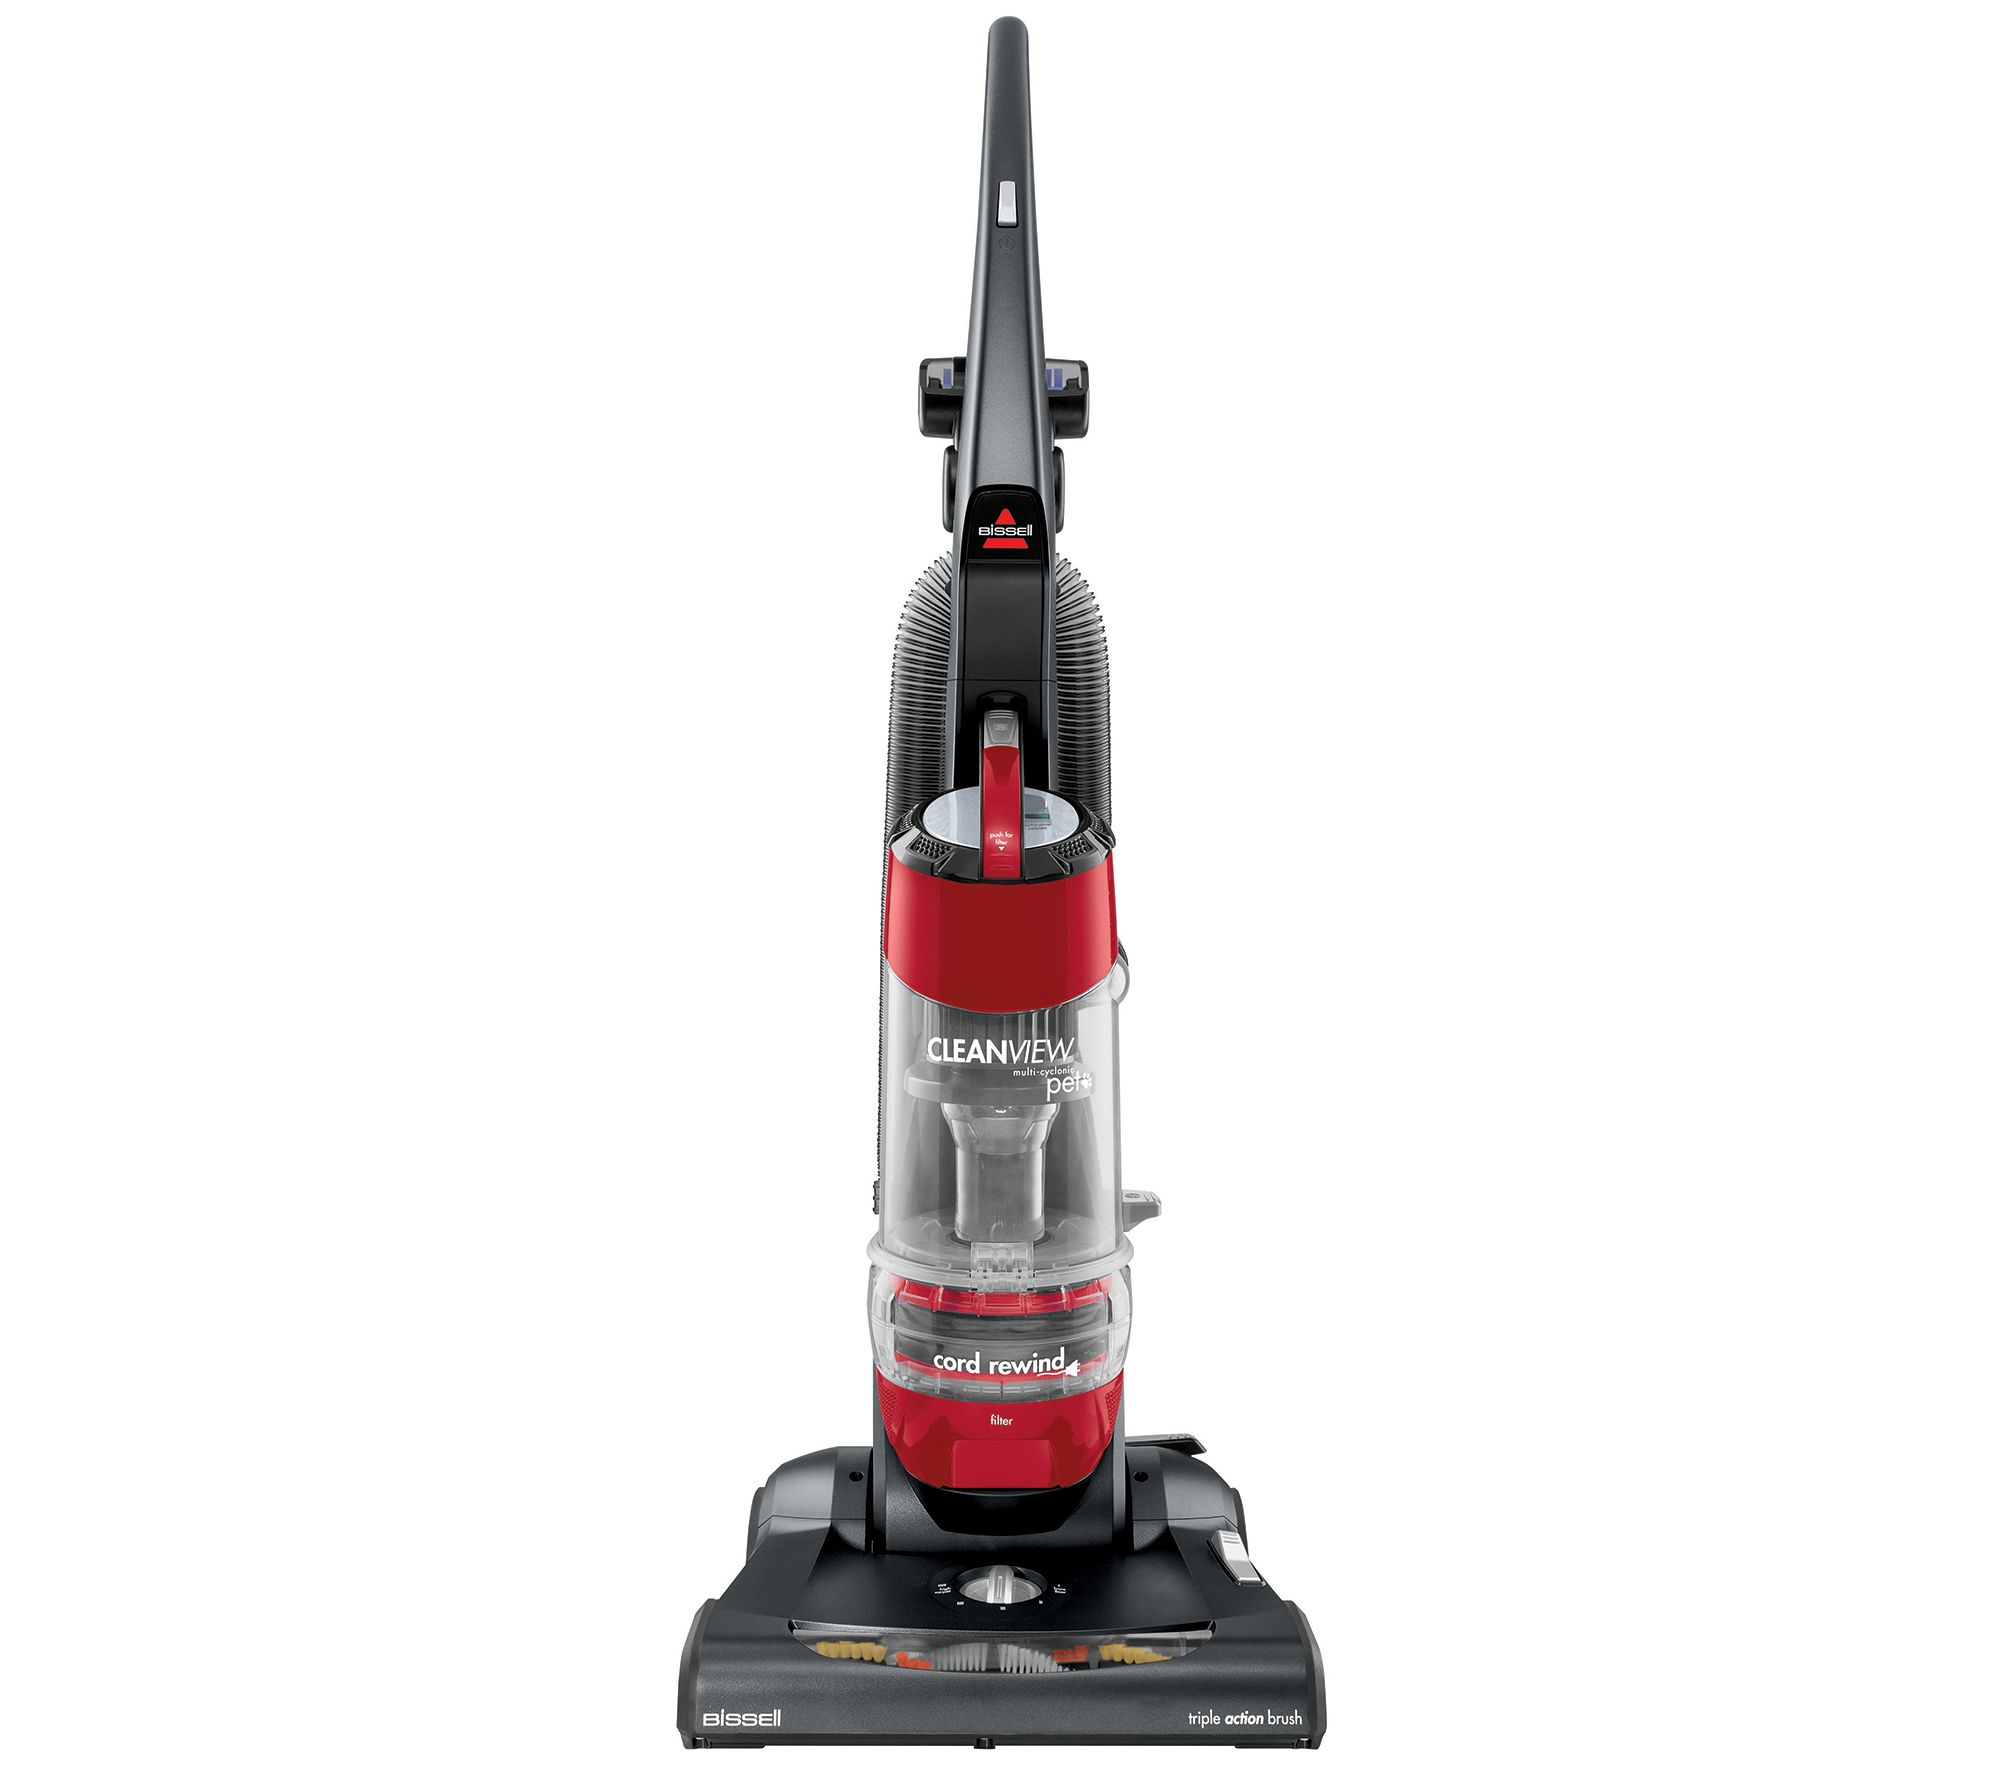 Bissell Cleanview Complete Pet Vacuum Page 1 Qvc Com